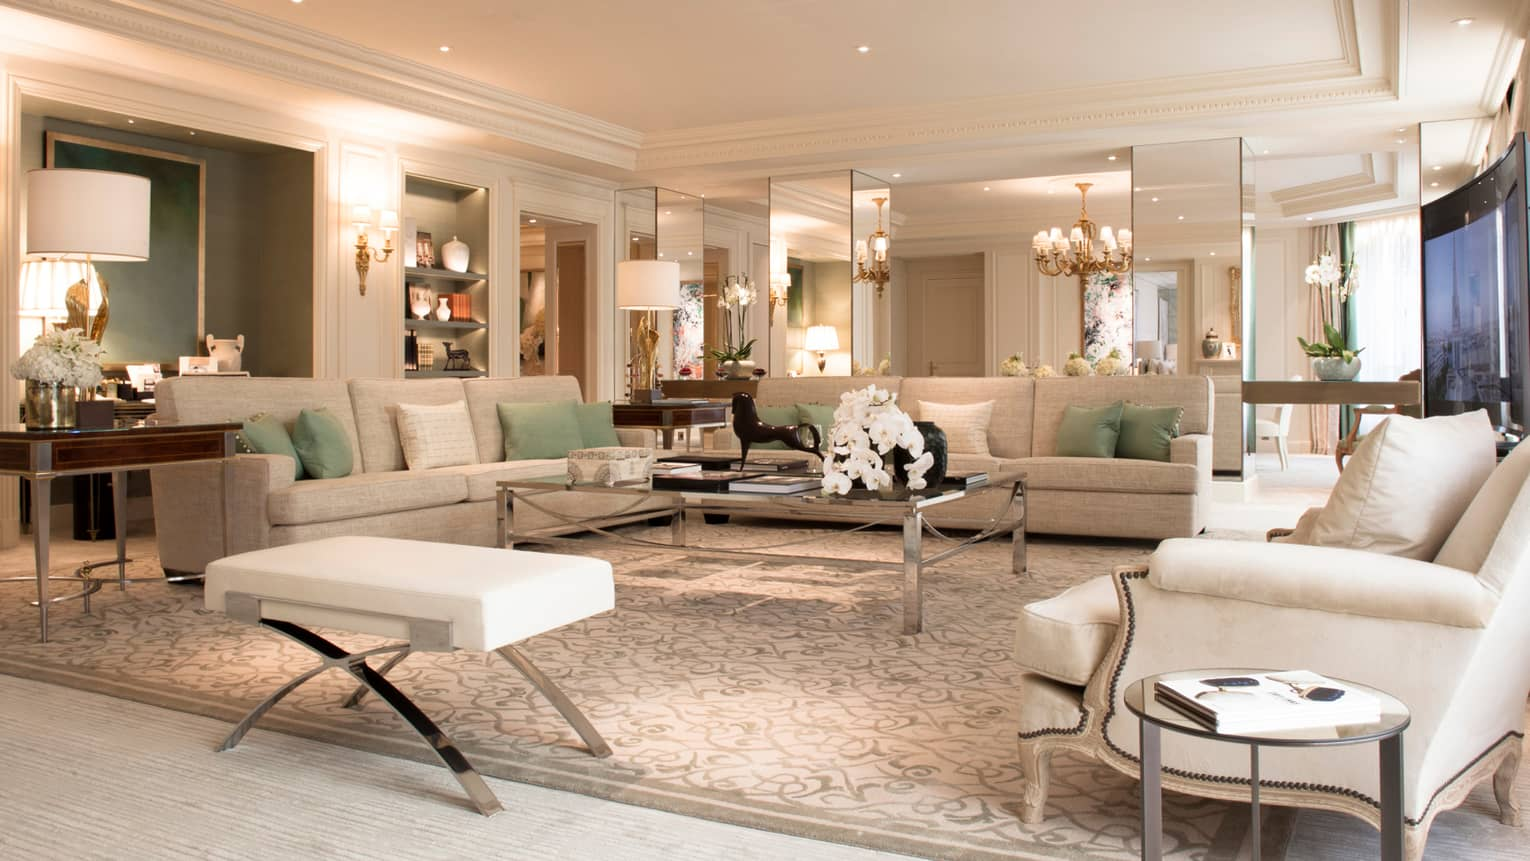 Royal Suite large living room, white sofas, armchairs, lamps, mirror walls